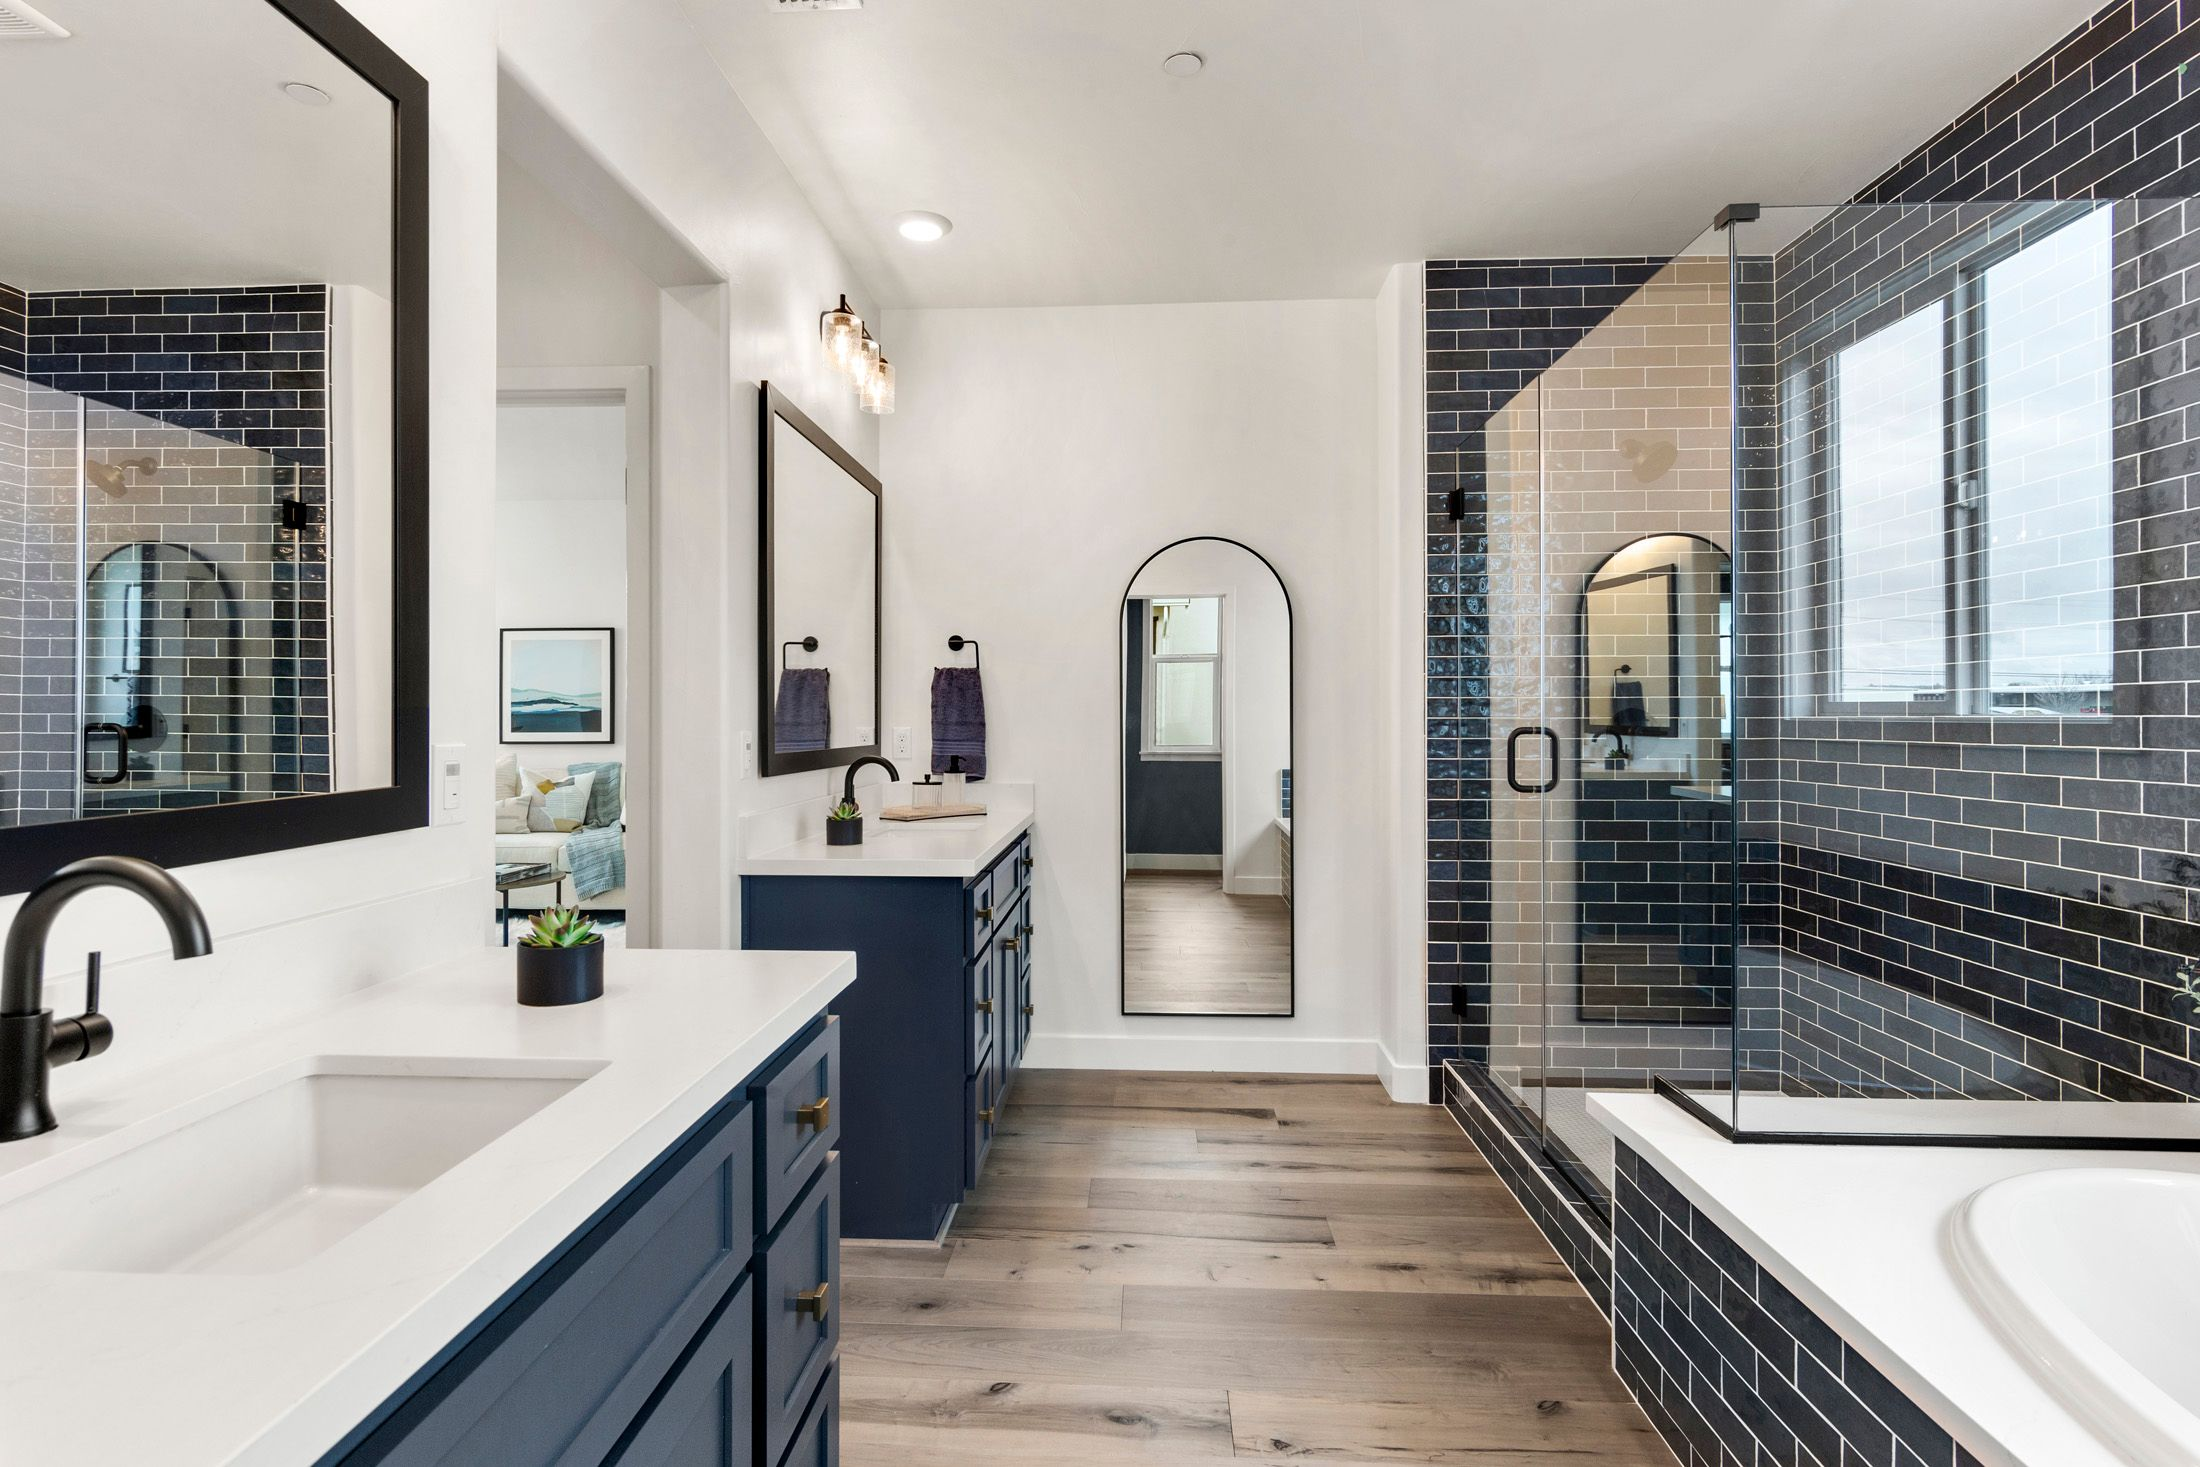 Bathroom featured in the Millstone Residence 3 By BlackPine Communites in Sacramento, CA